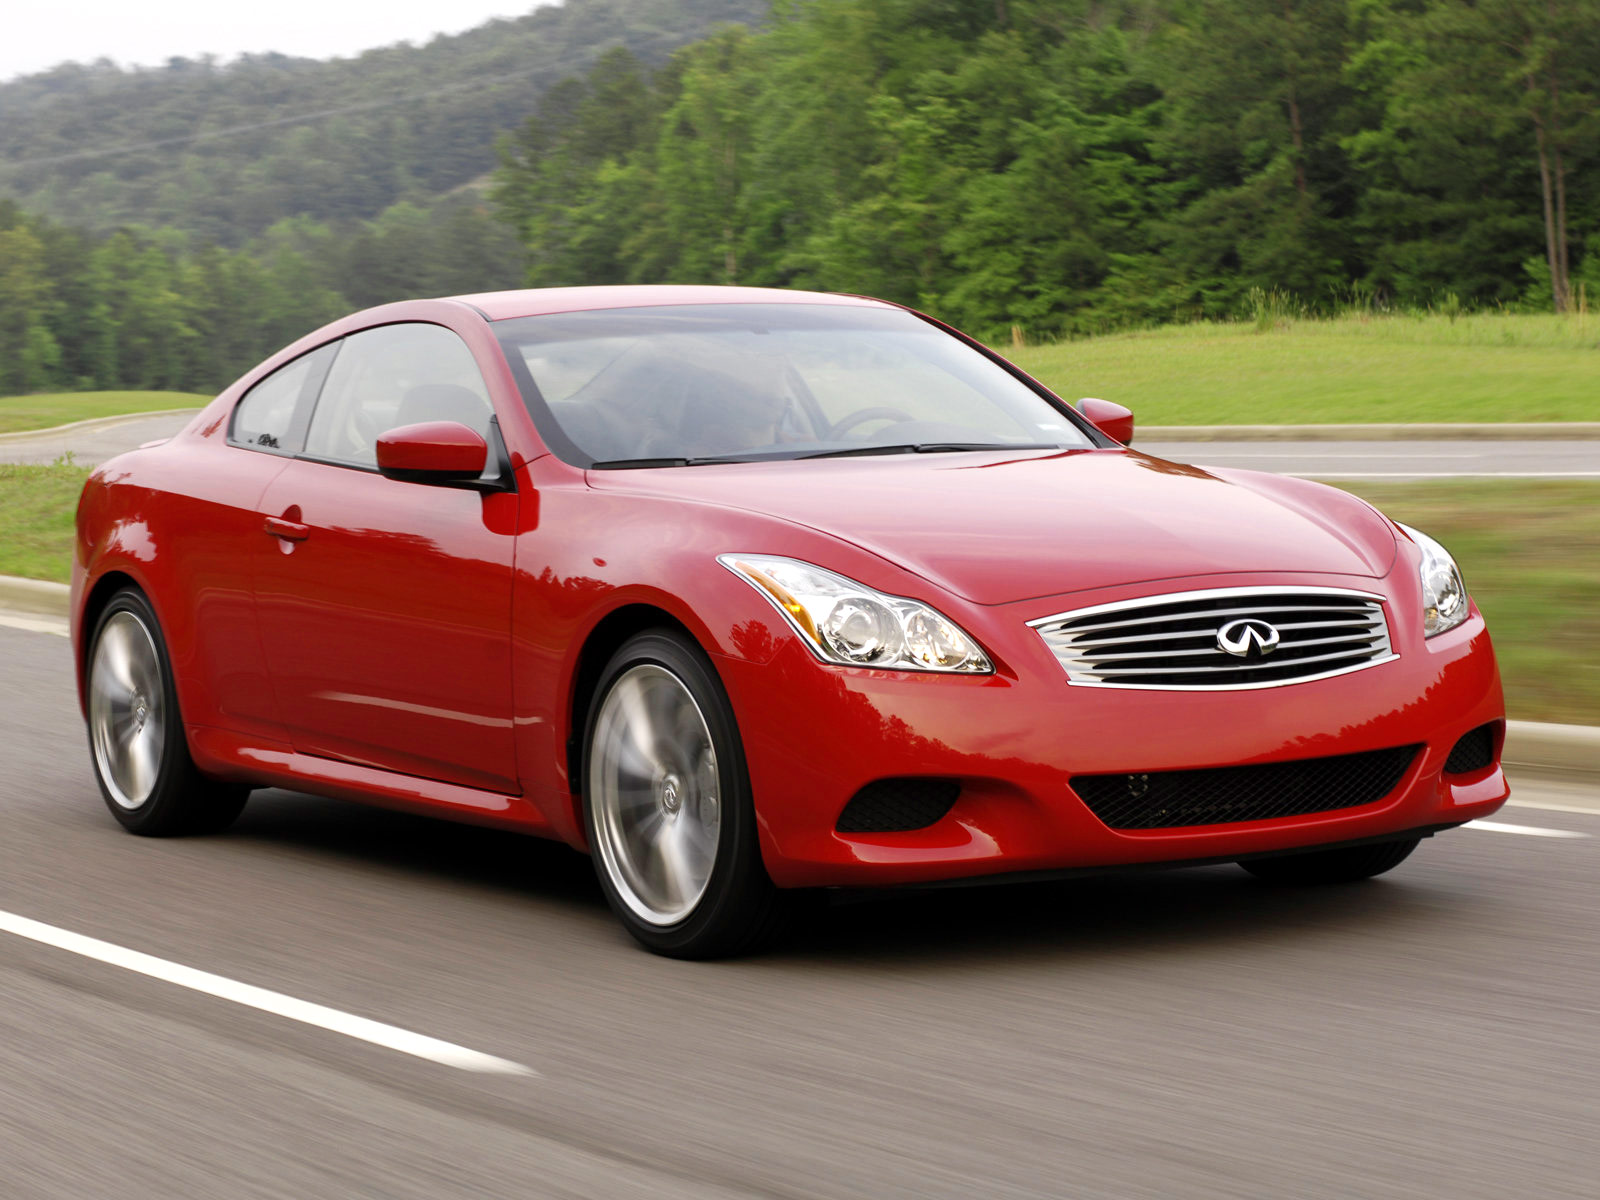 Infiniti G37 Coupe Car Pictures 2008 Accident Lawyers Info